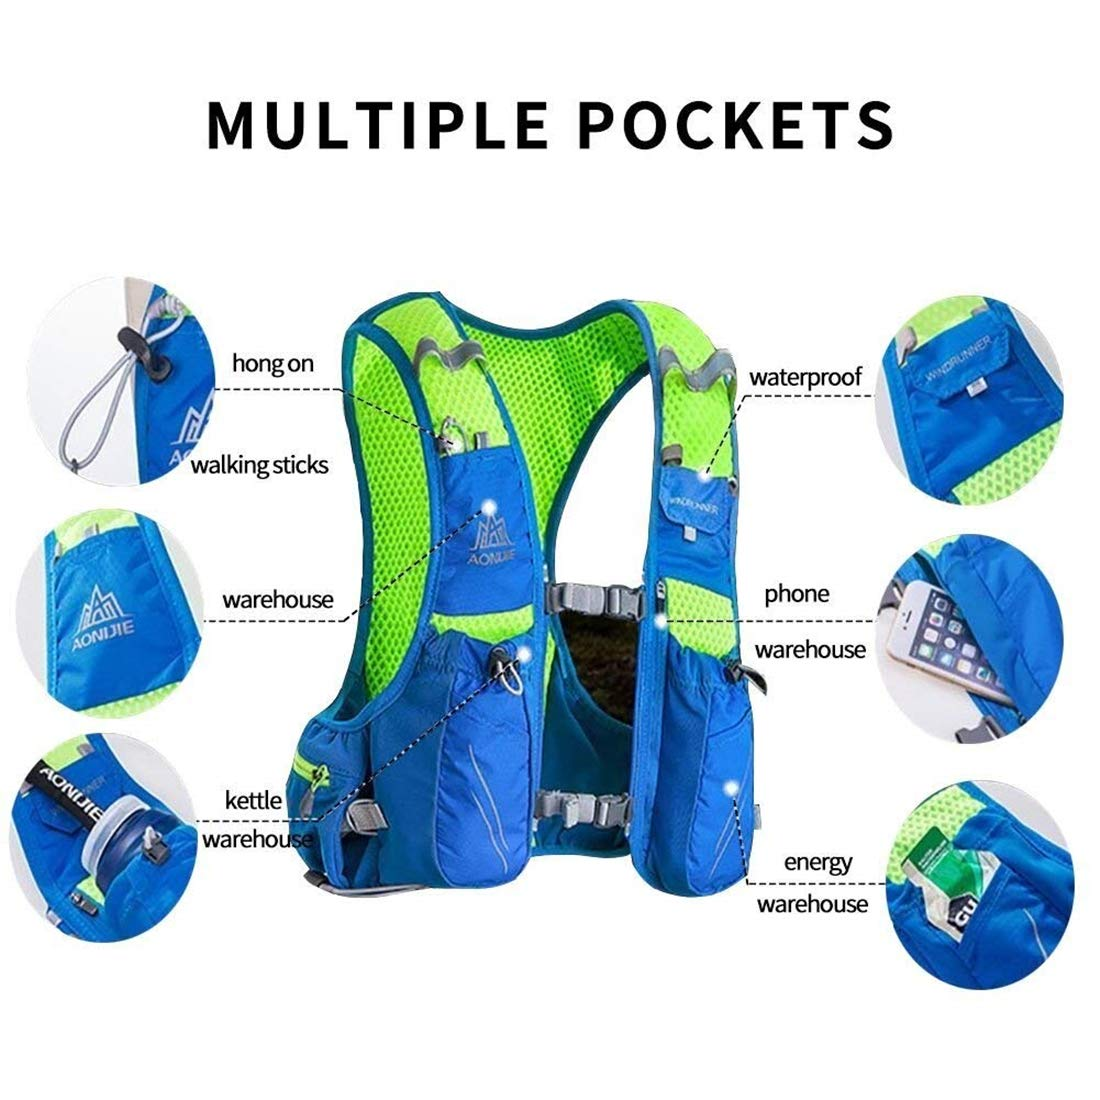 Aonijie Hydration Backpack 10l Running Vest Pack With Waist Bag Blue Green Water Bottle 2l Bladder For Hiking Camping Bicycling Black L Xl Sports